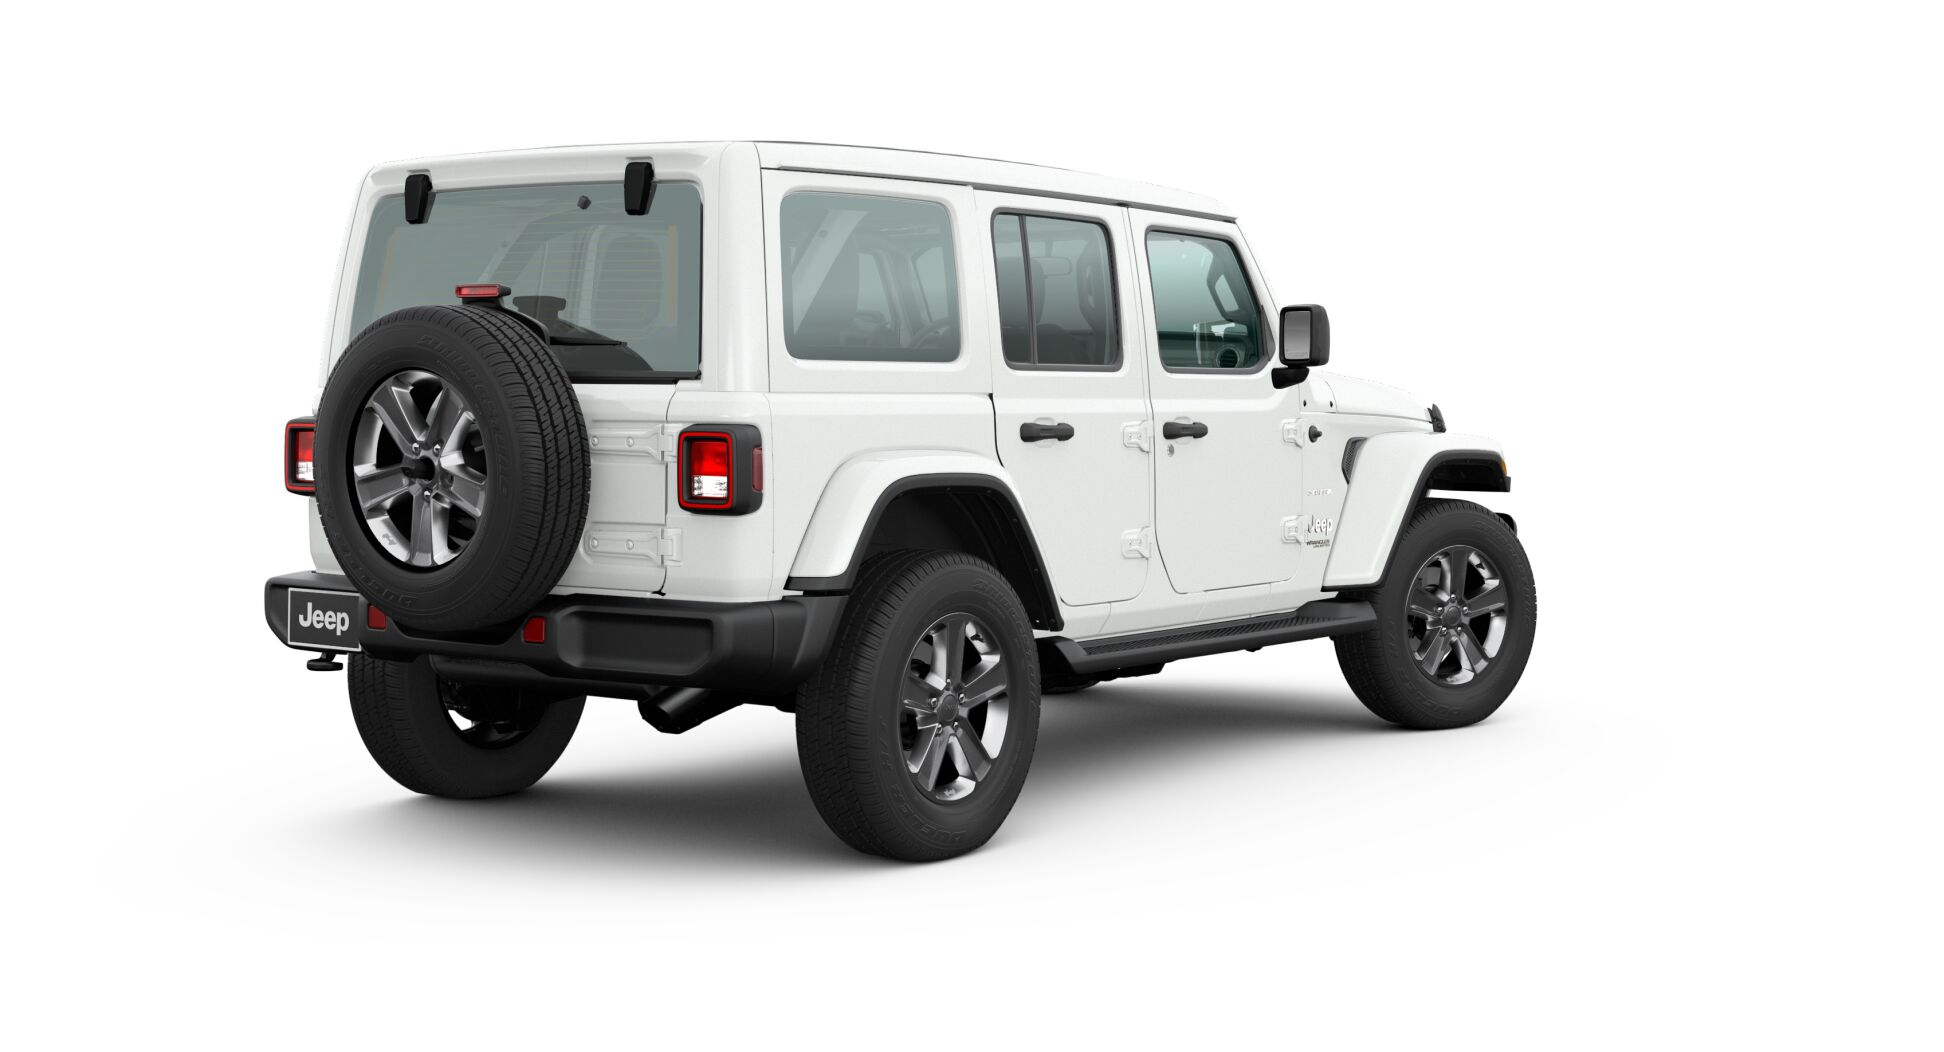 2020 Jeep Wrangler Sky One-Touch™ Power Top up